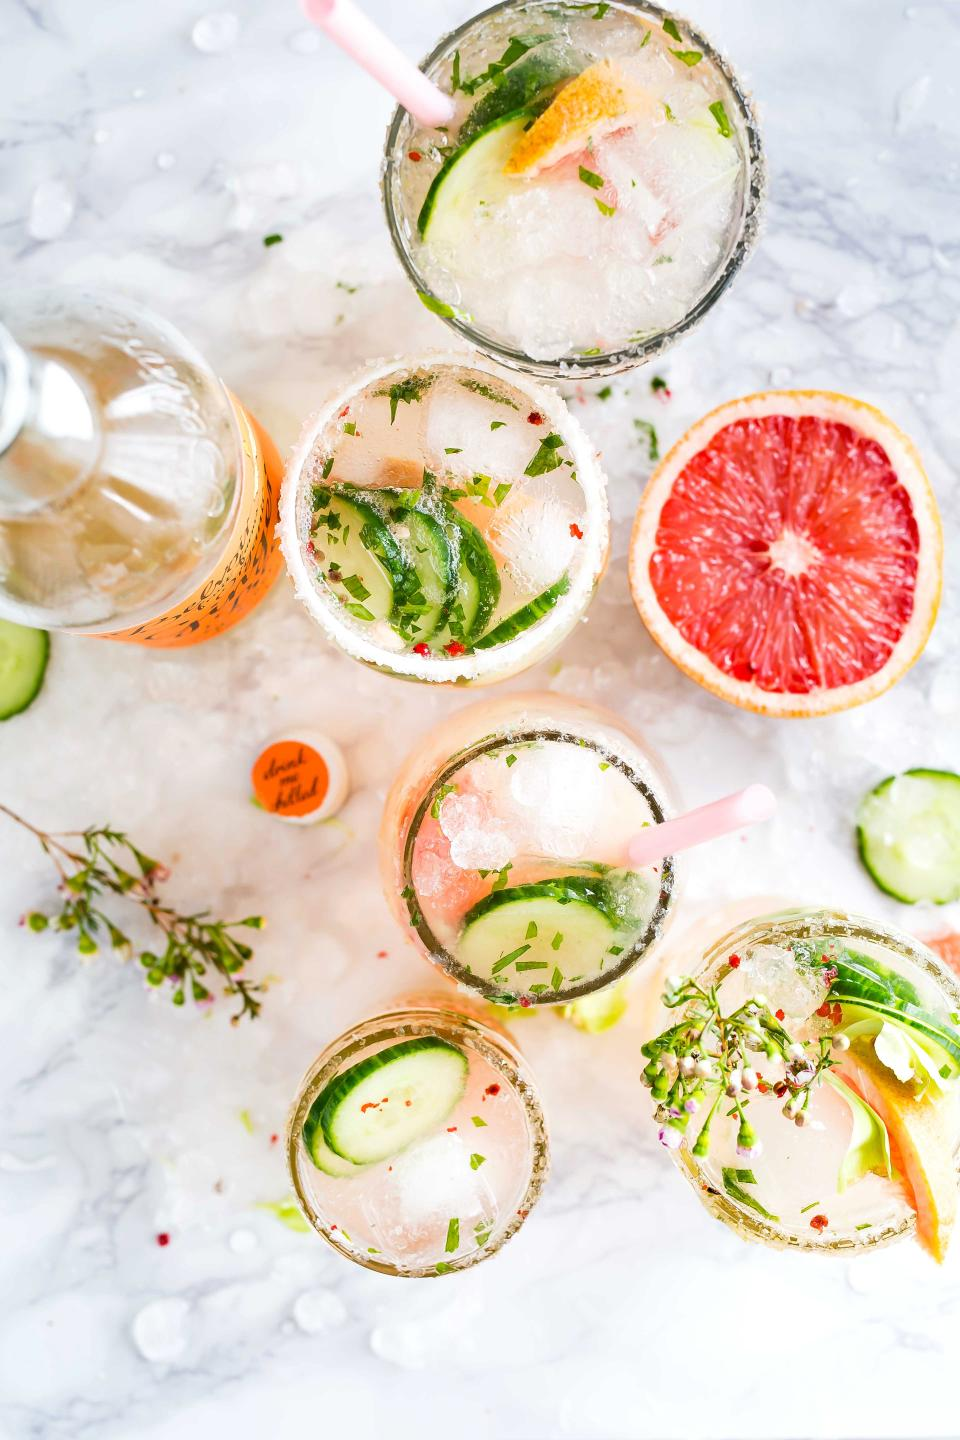 drinks beverage cold table restaurant coffee glass grapefruit fruit food green leaves cucumber ice